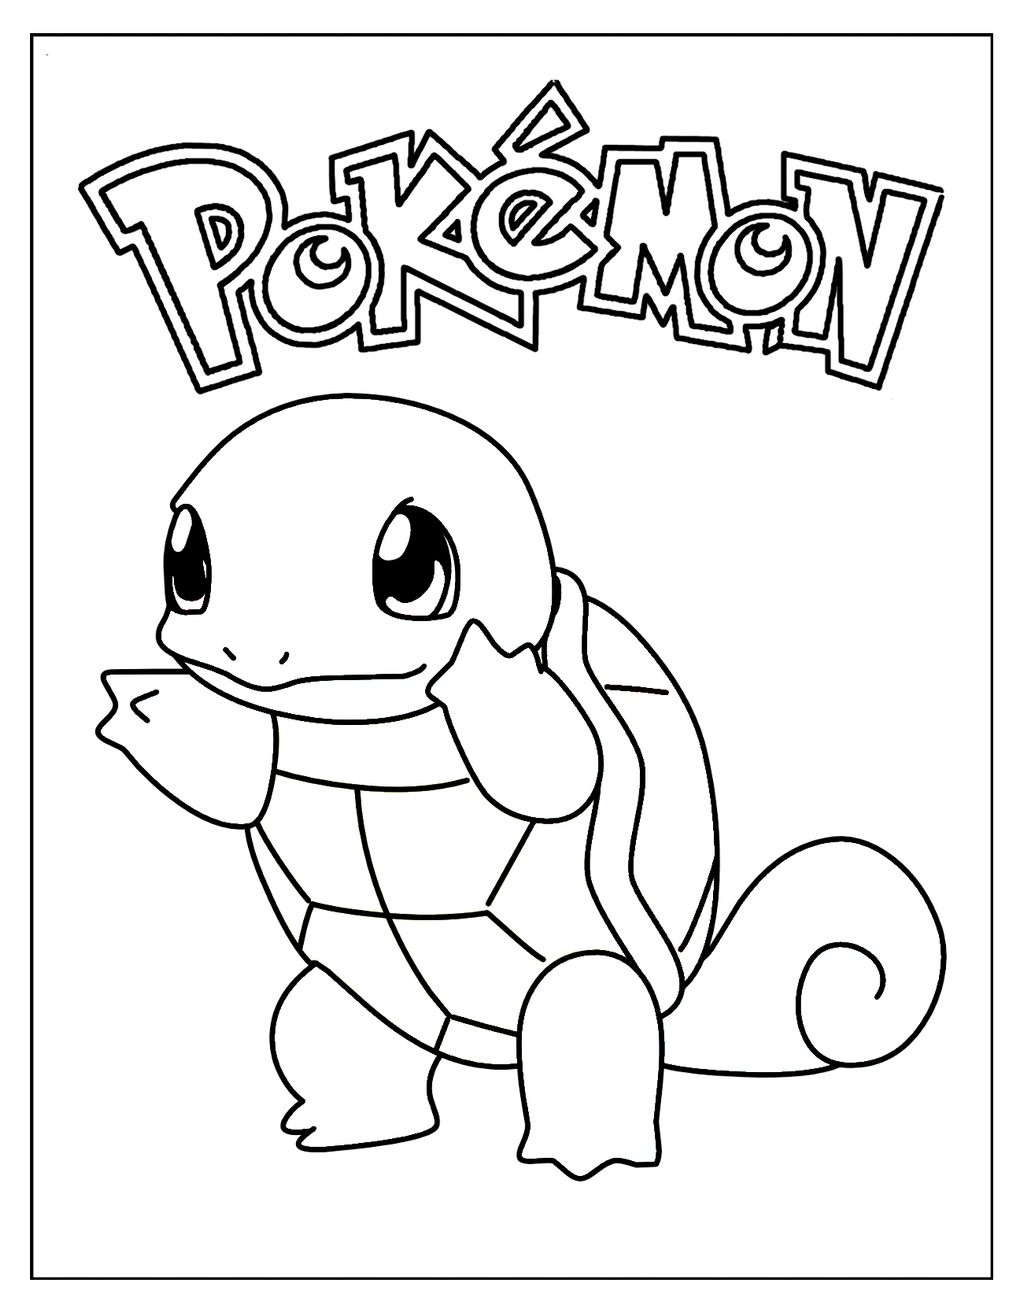 squirtle blue turtle pokemon coloring sheet